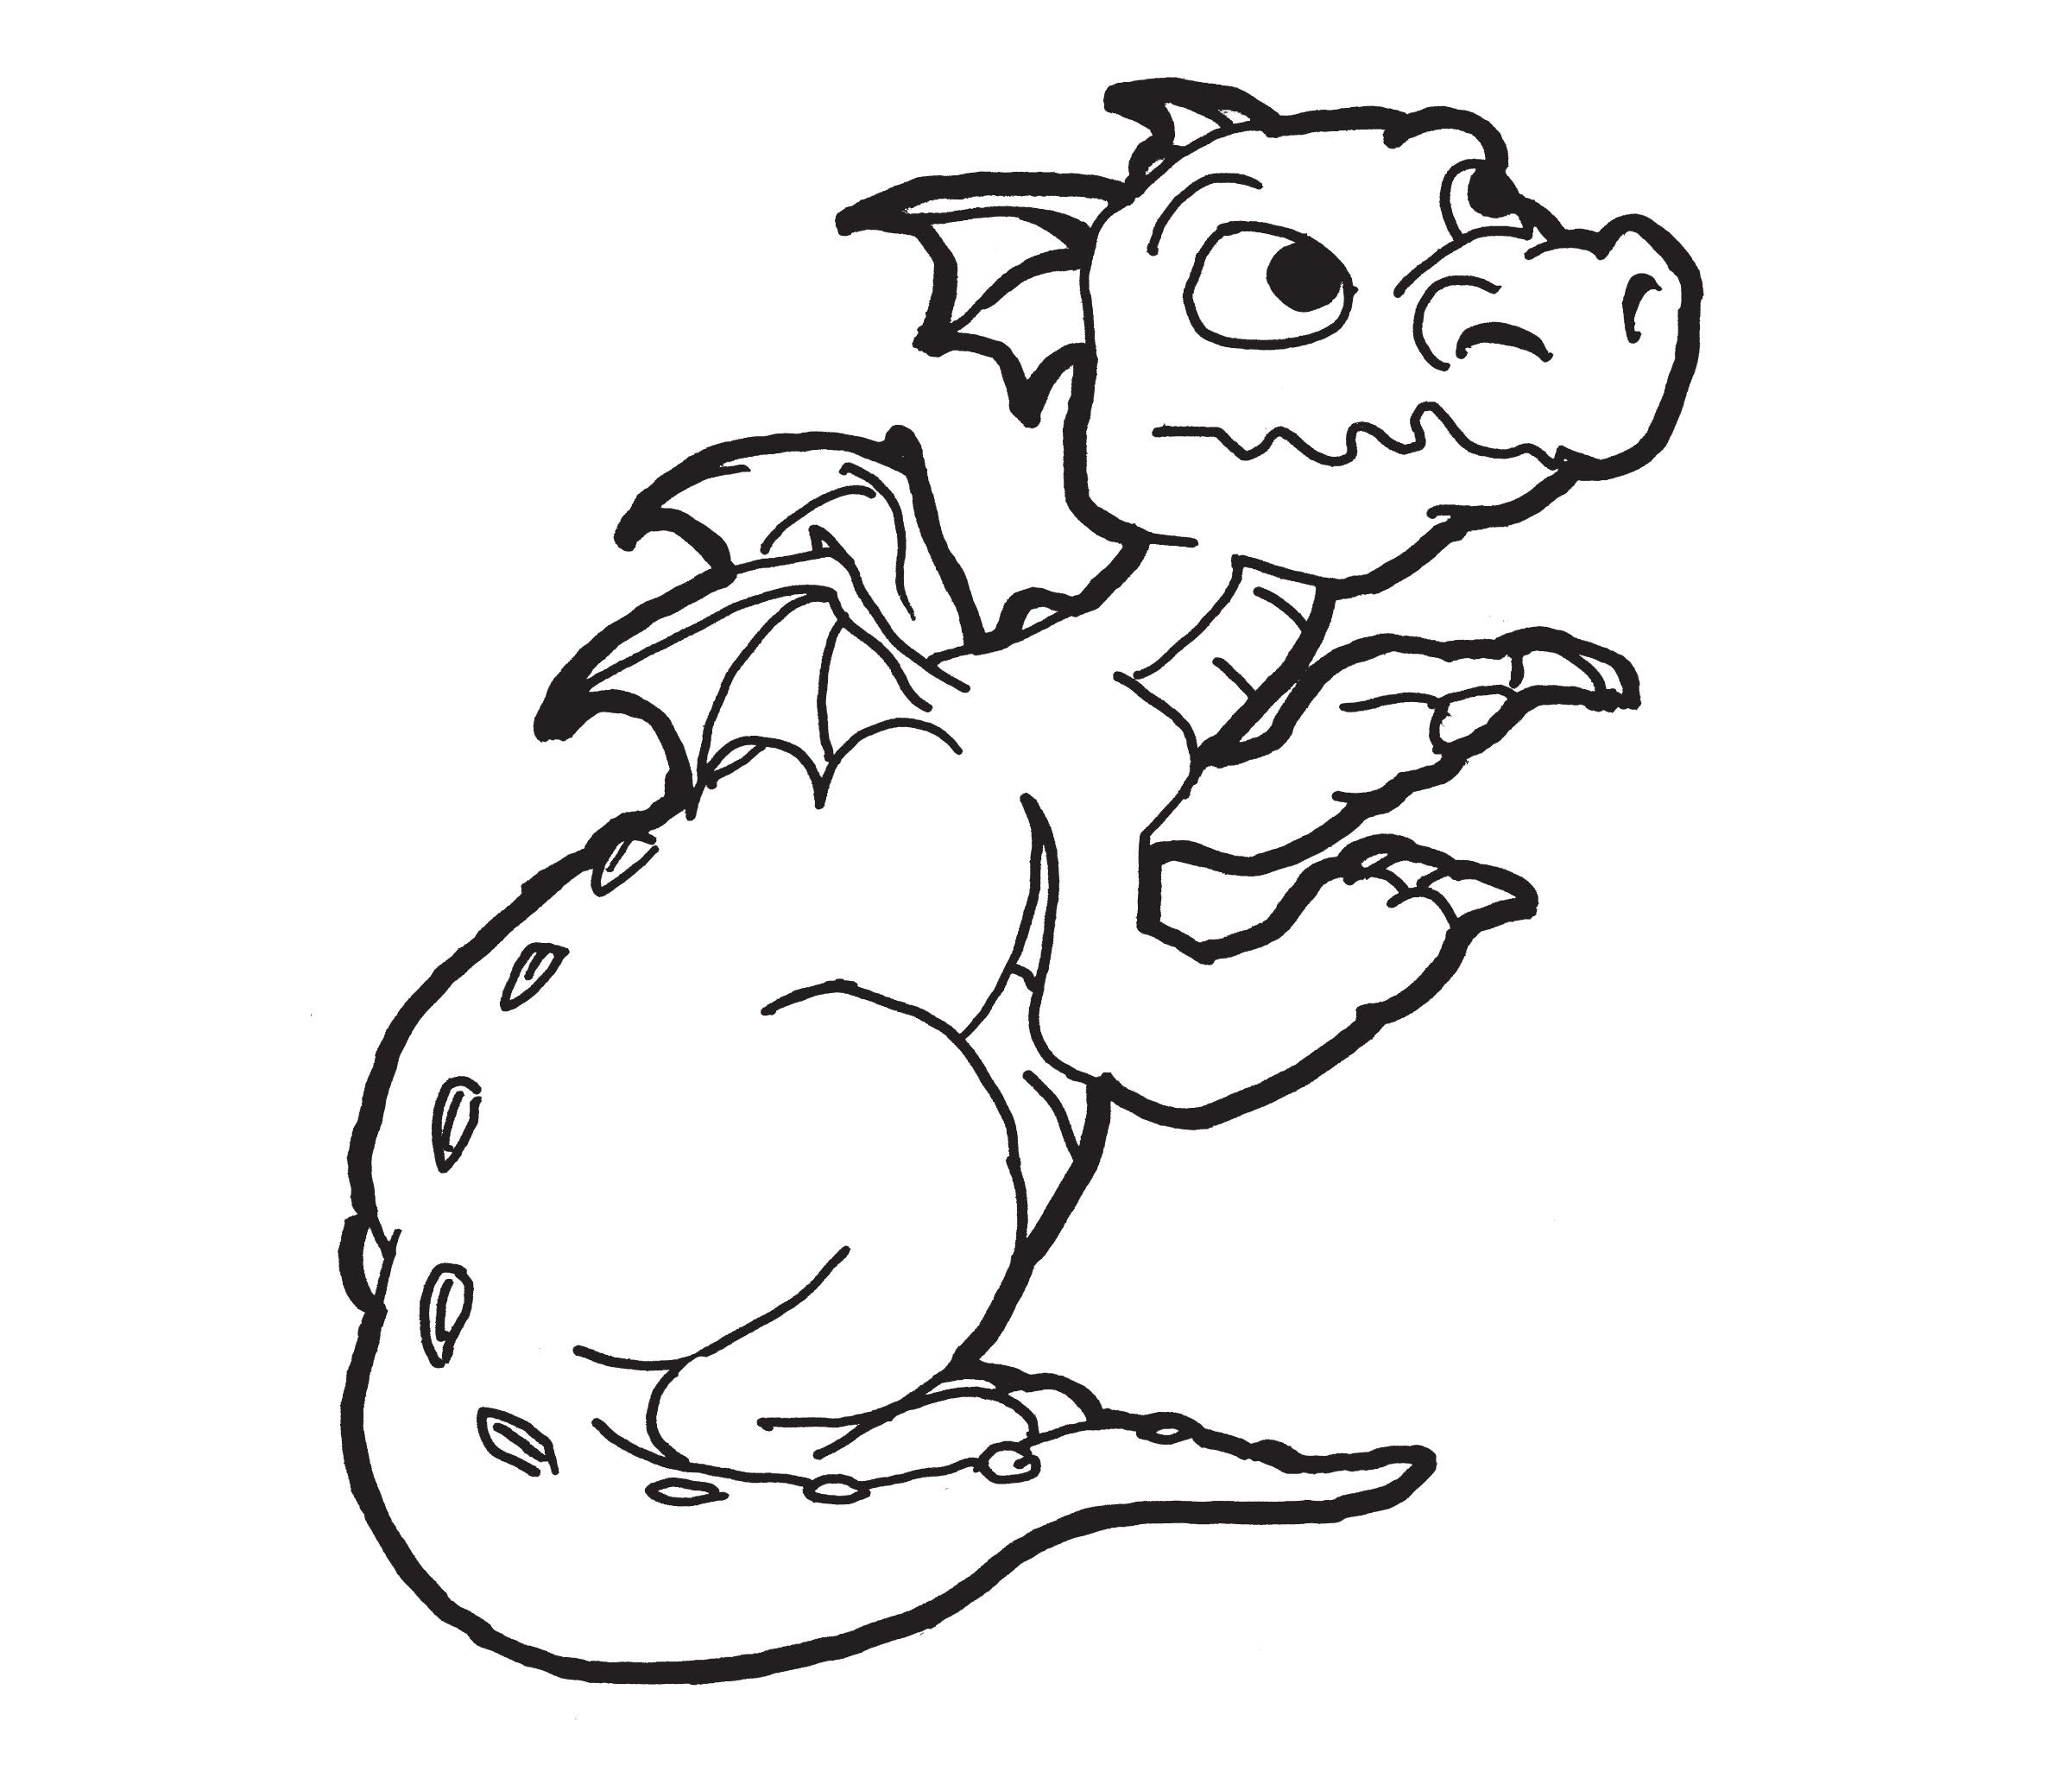 baby dragons coloring pages - photo#25